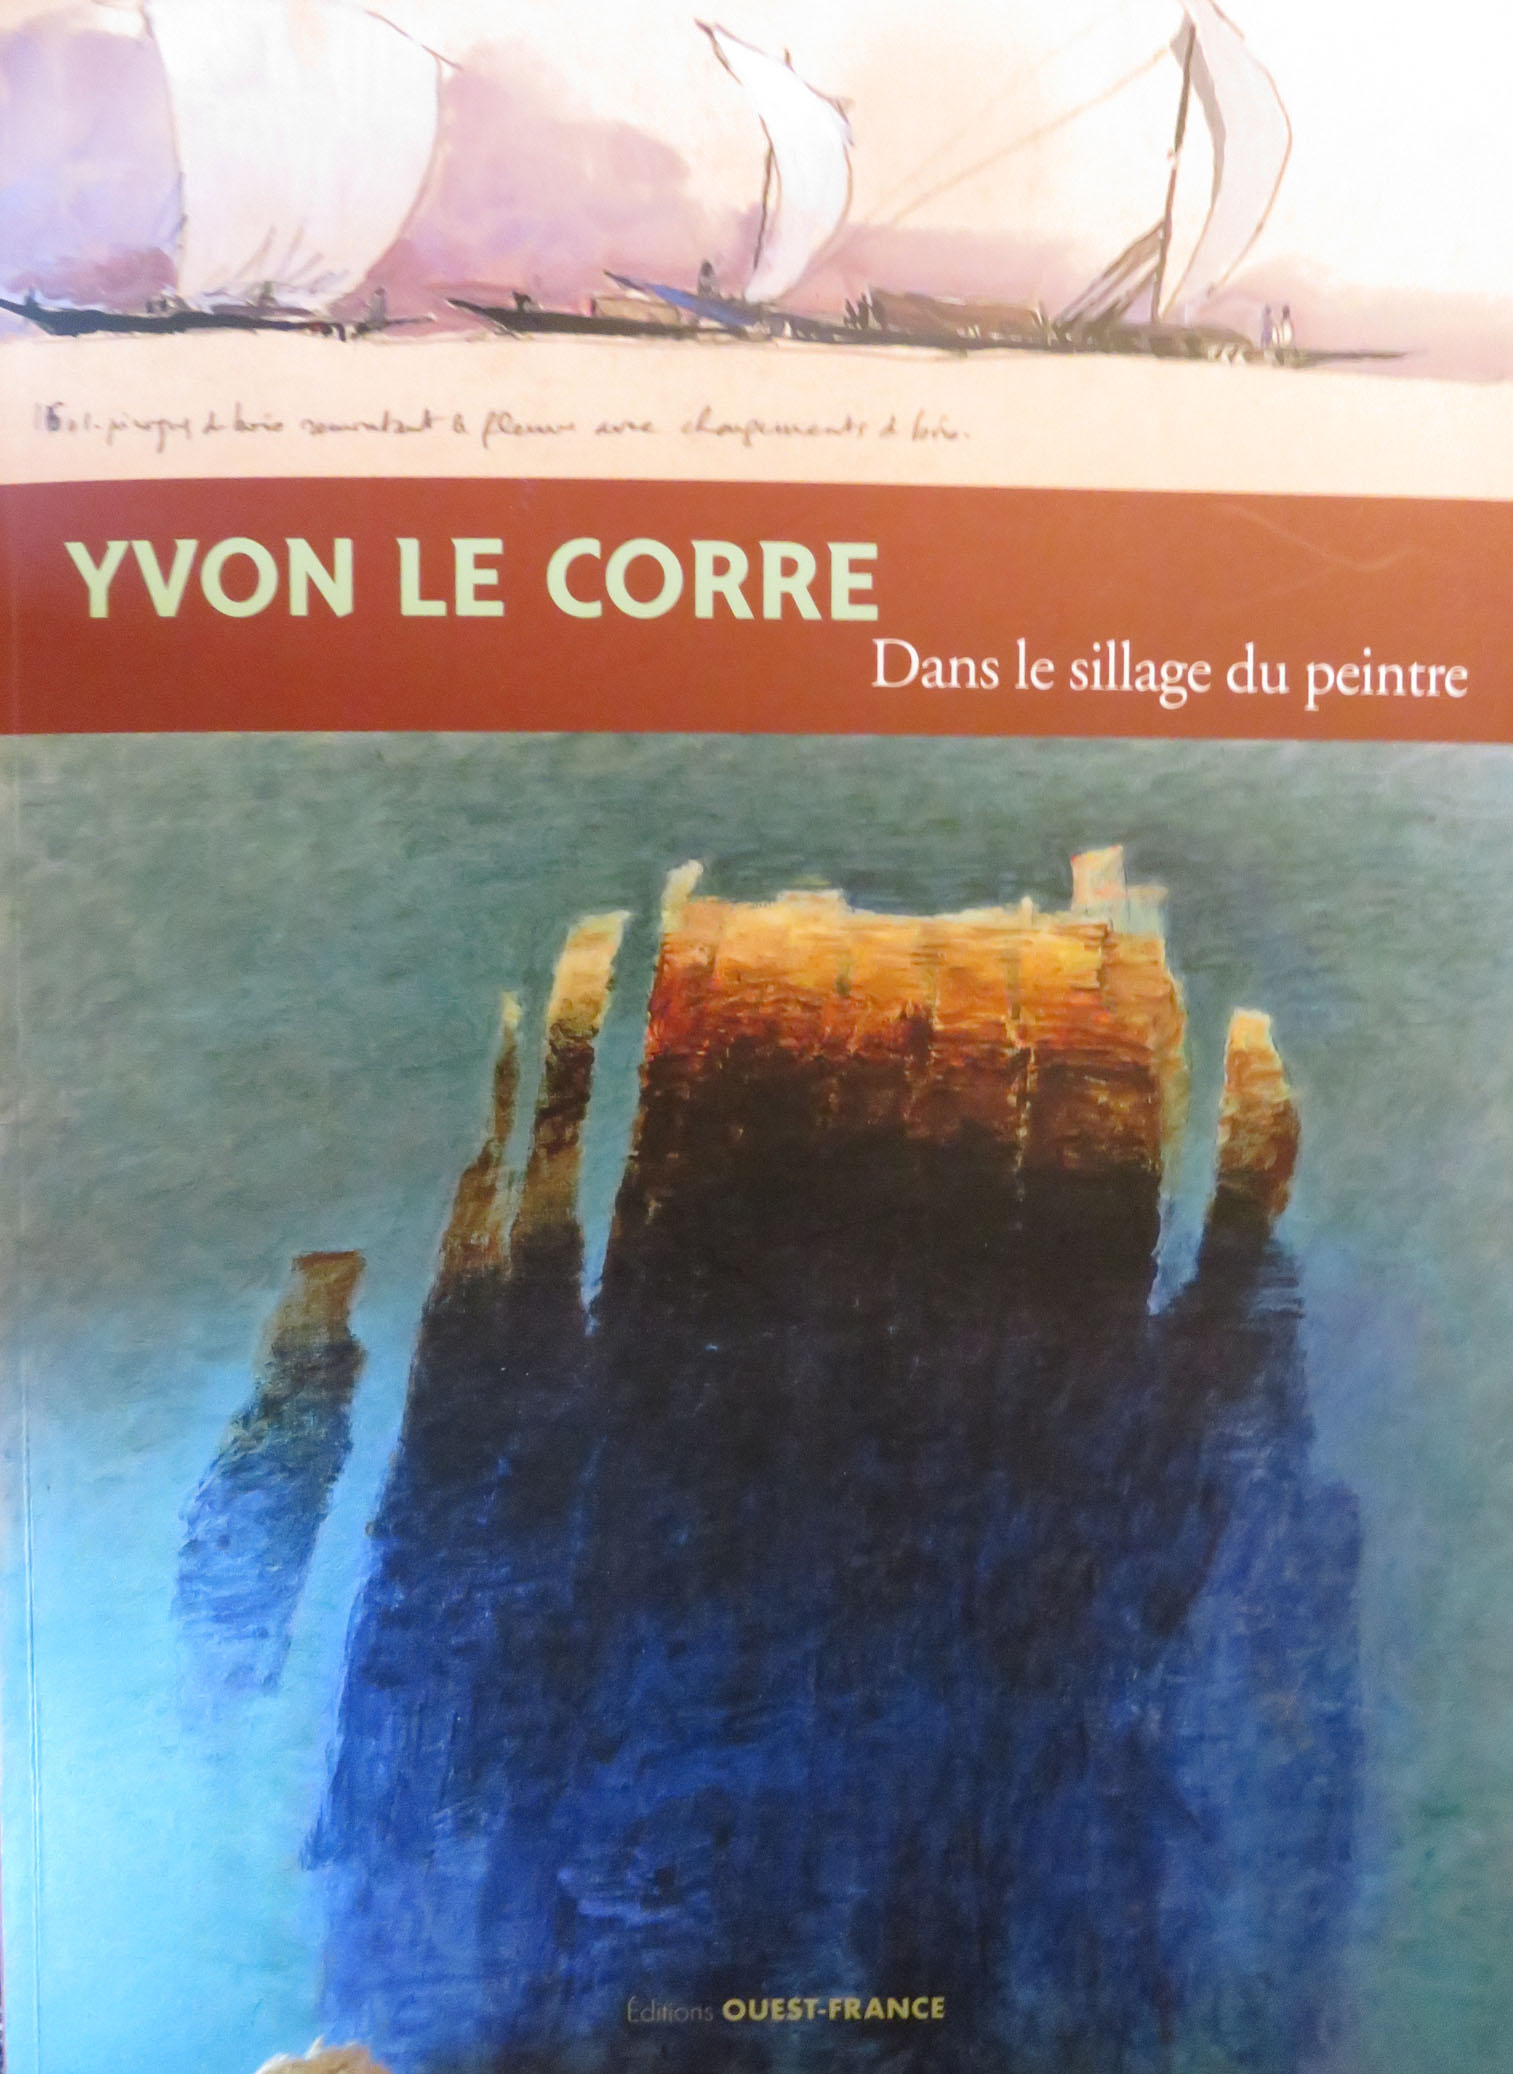 yvon le corrre oct 2016 005pm.jpg